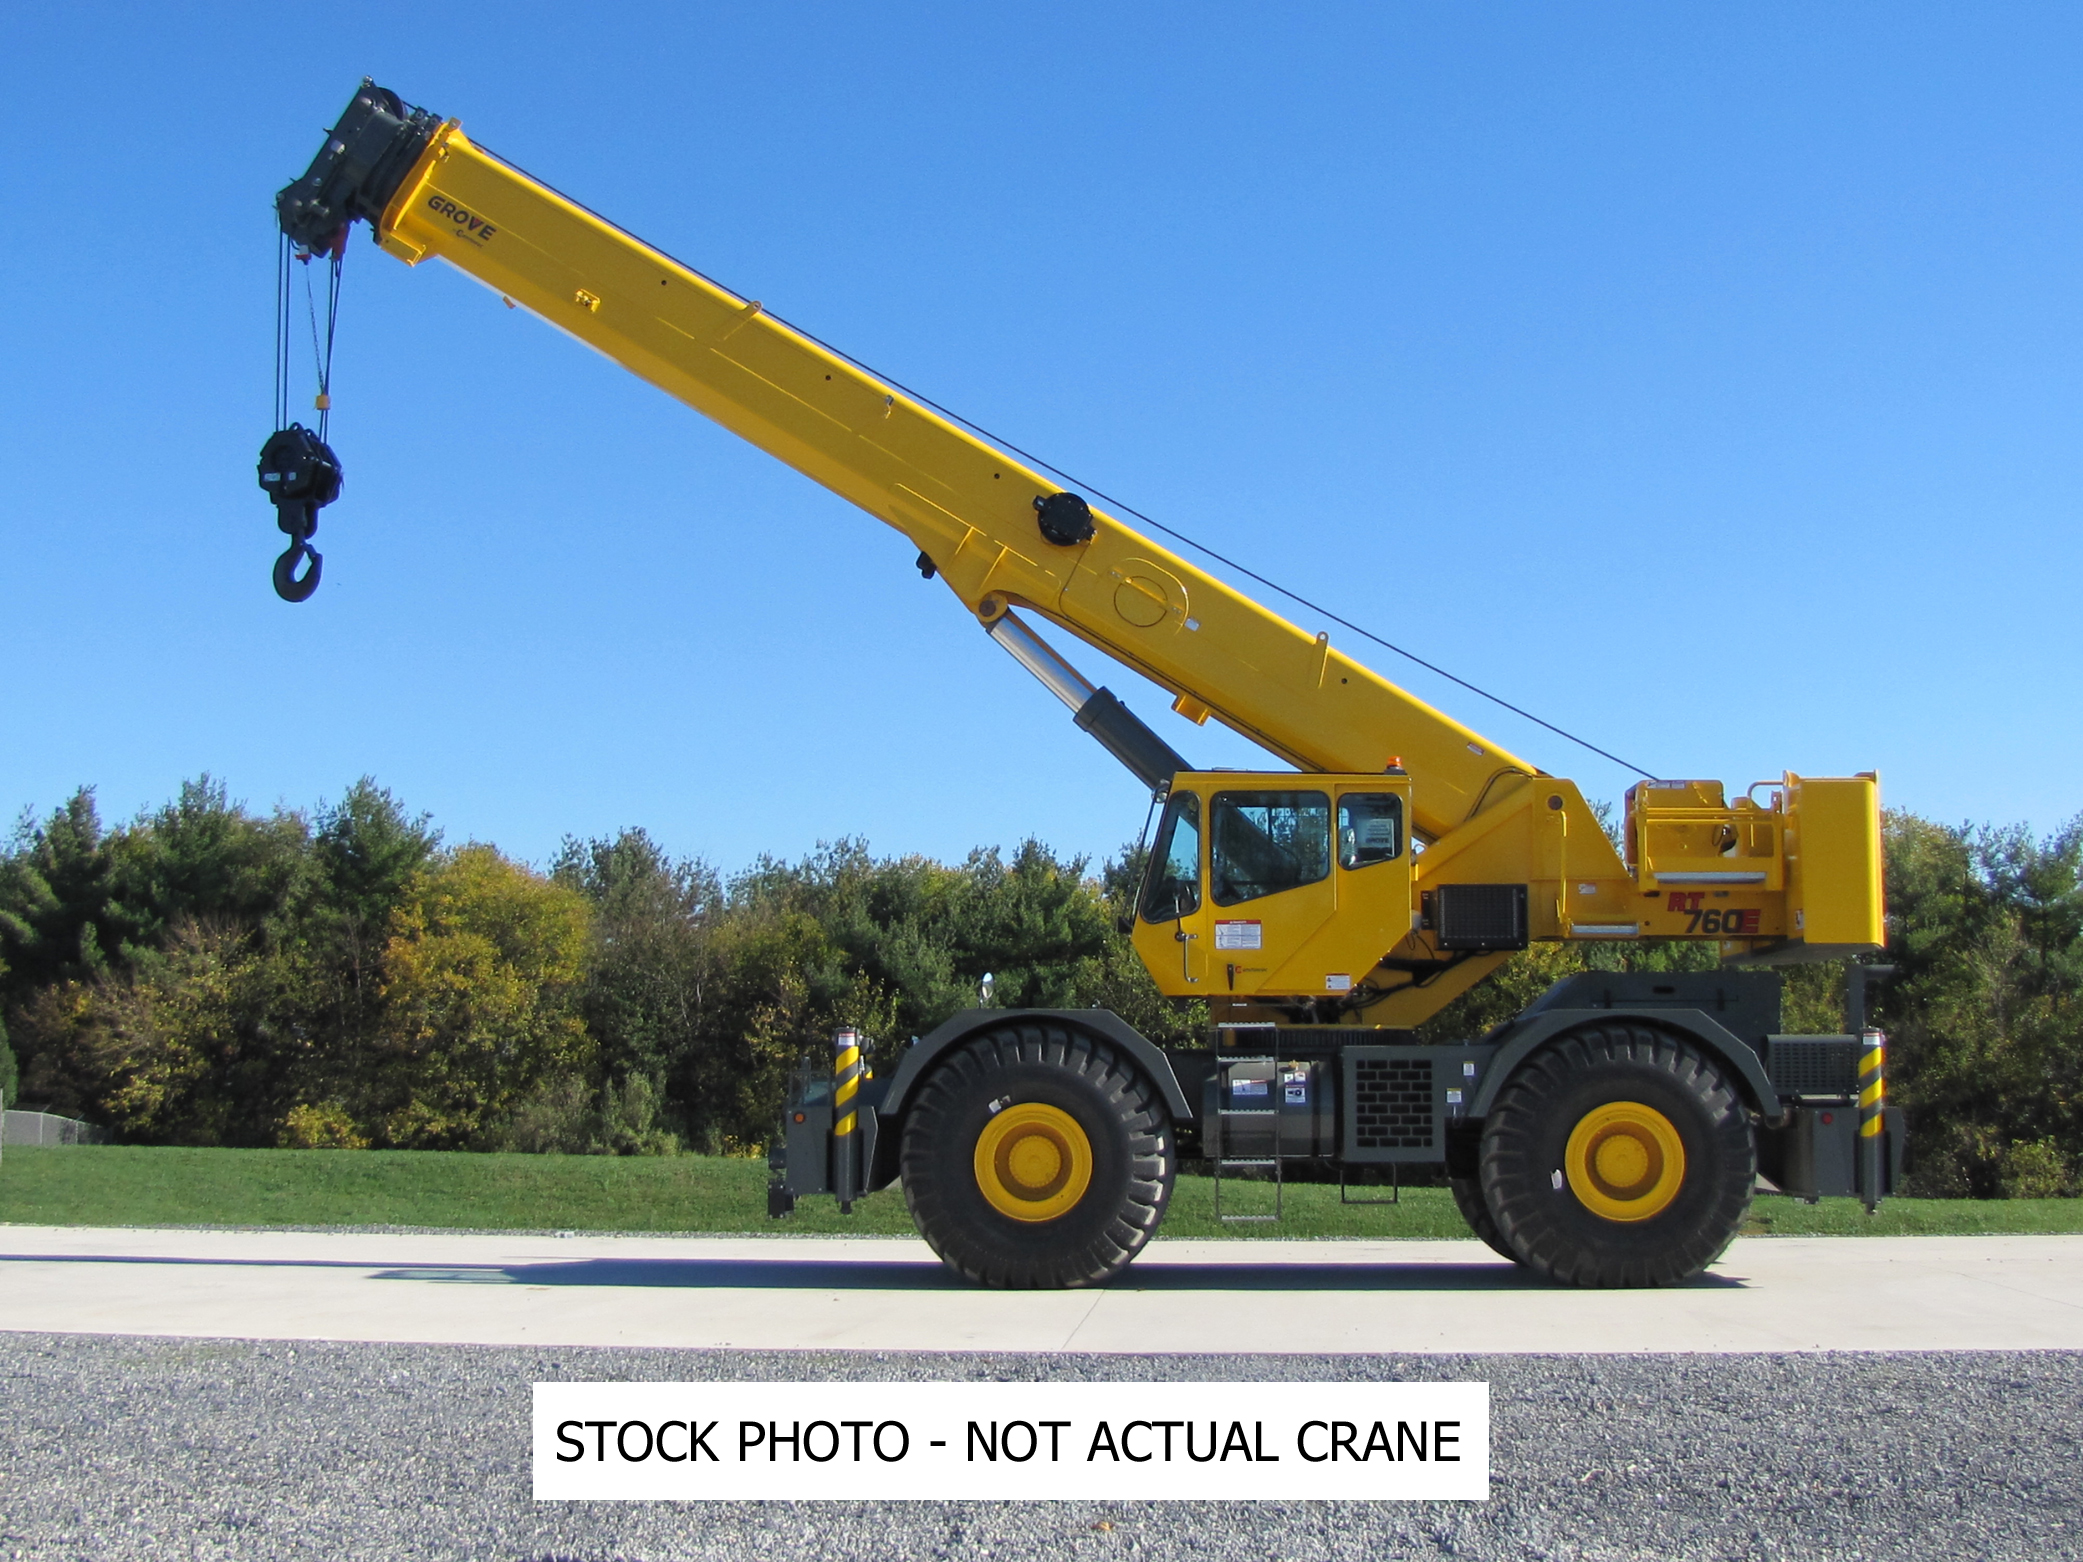 2007 Grove RT760E - 60 Ton Rough Terrain Crane